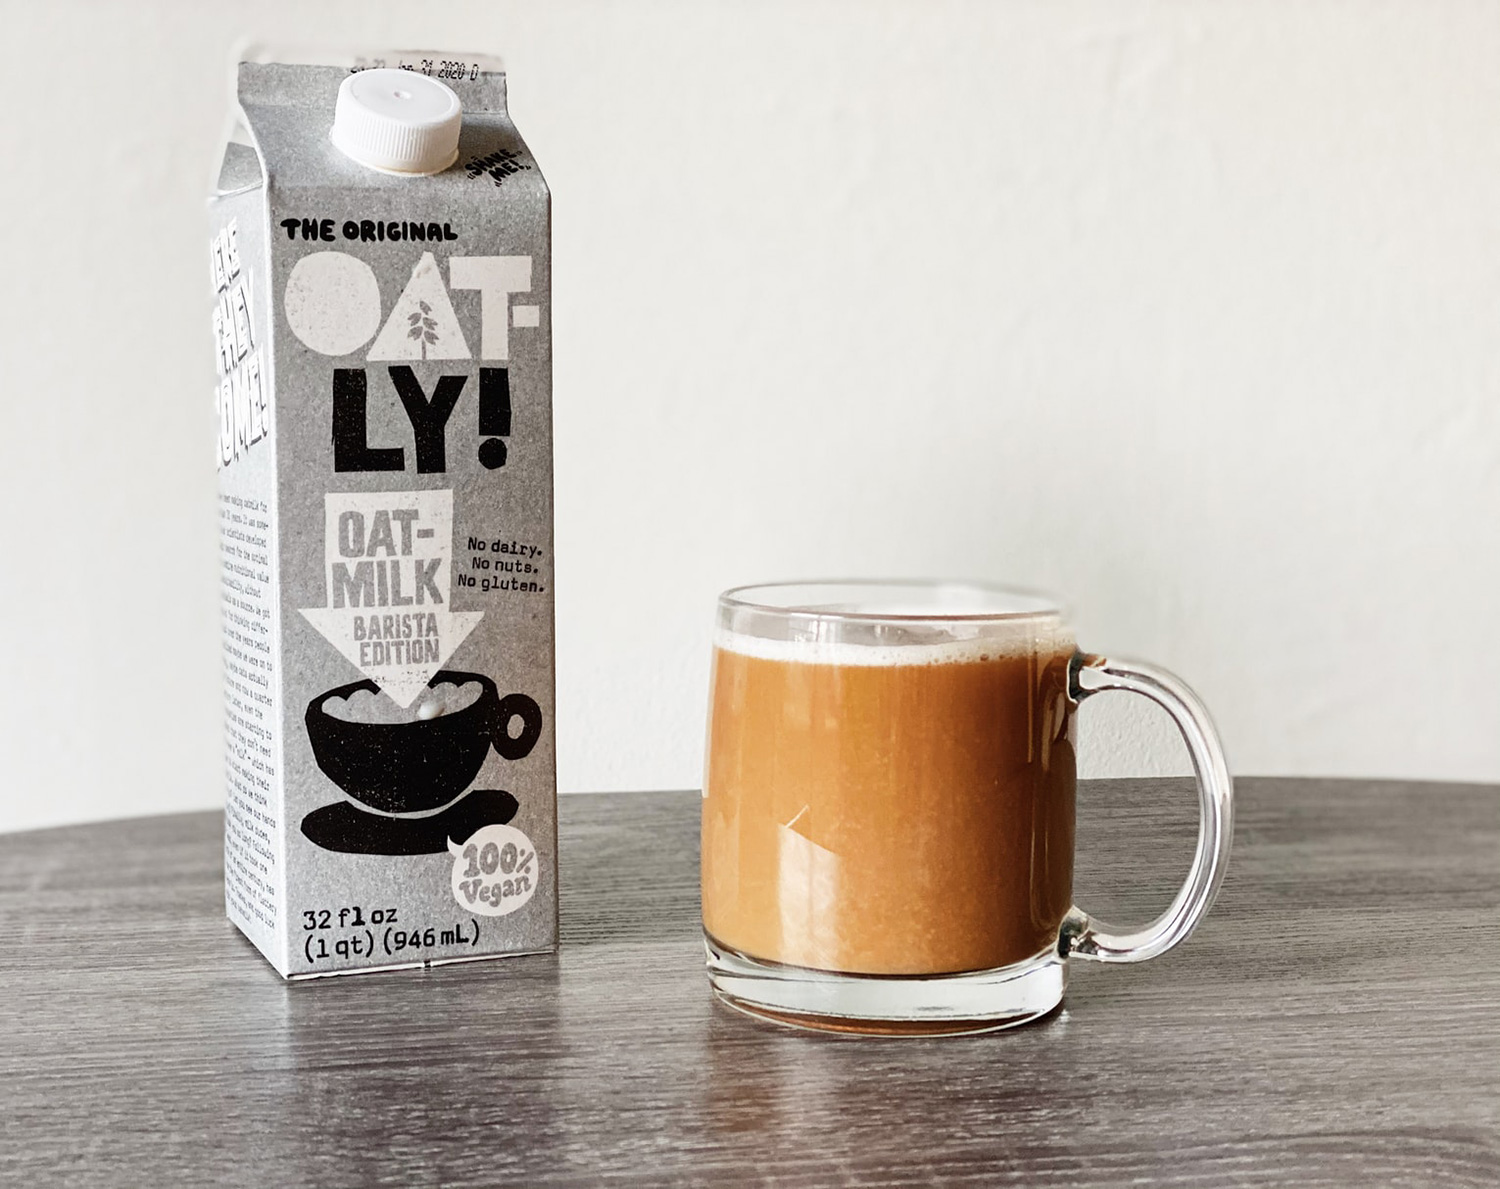 A carton of oat-ly brand oat milk and a full cup of coffee.